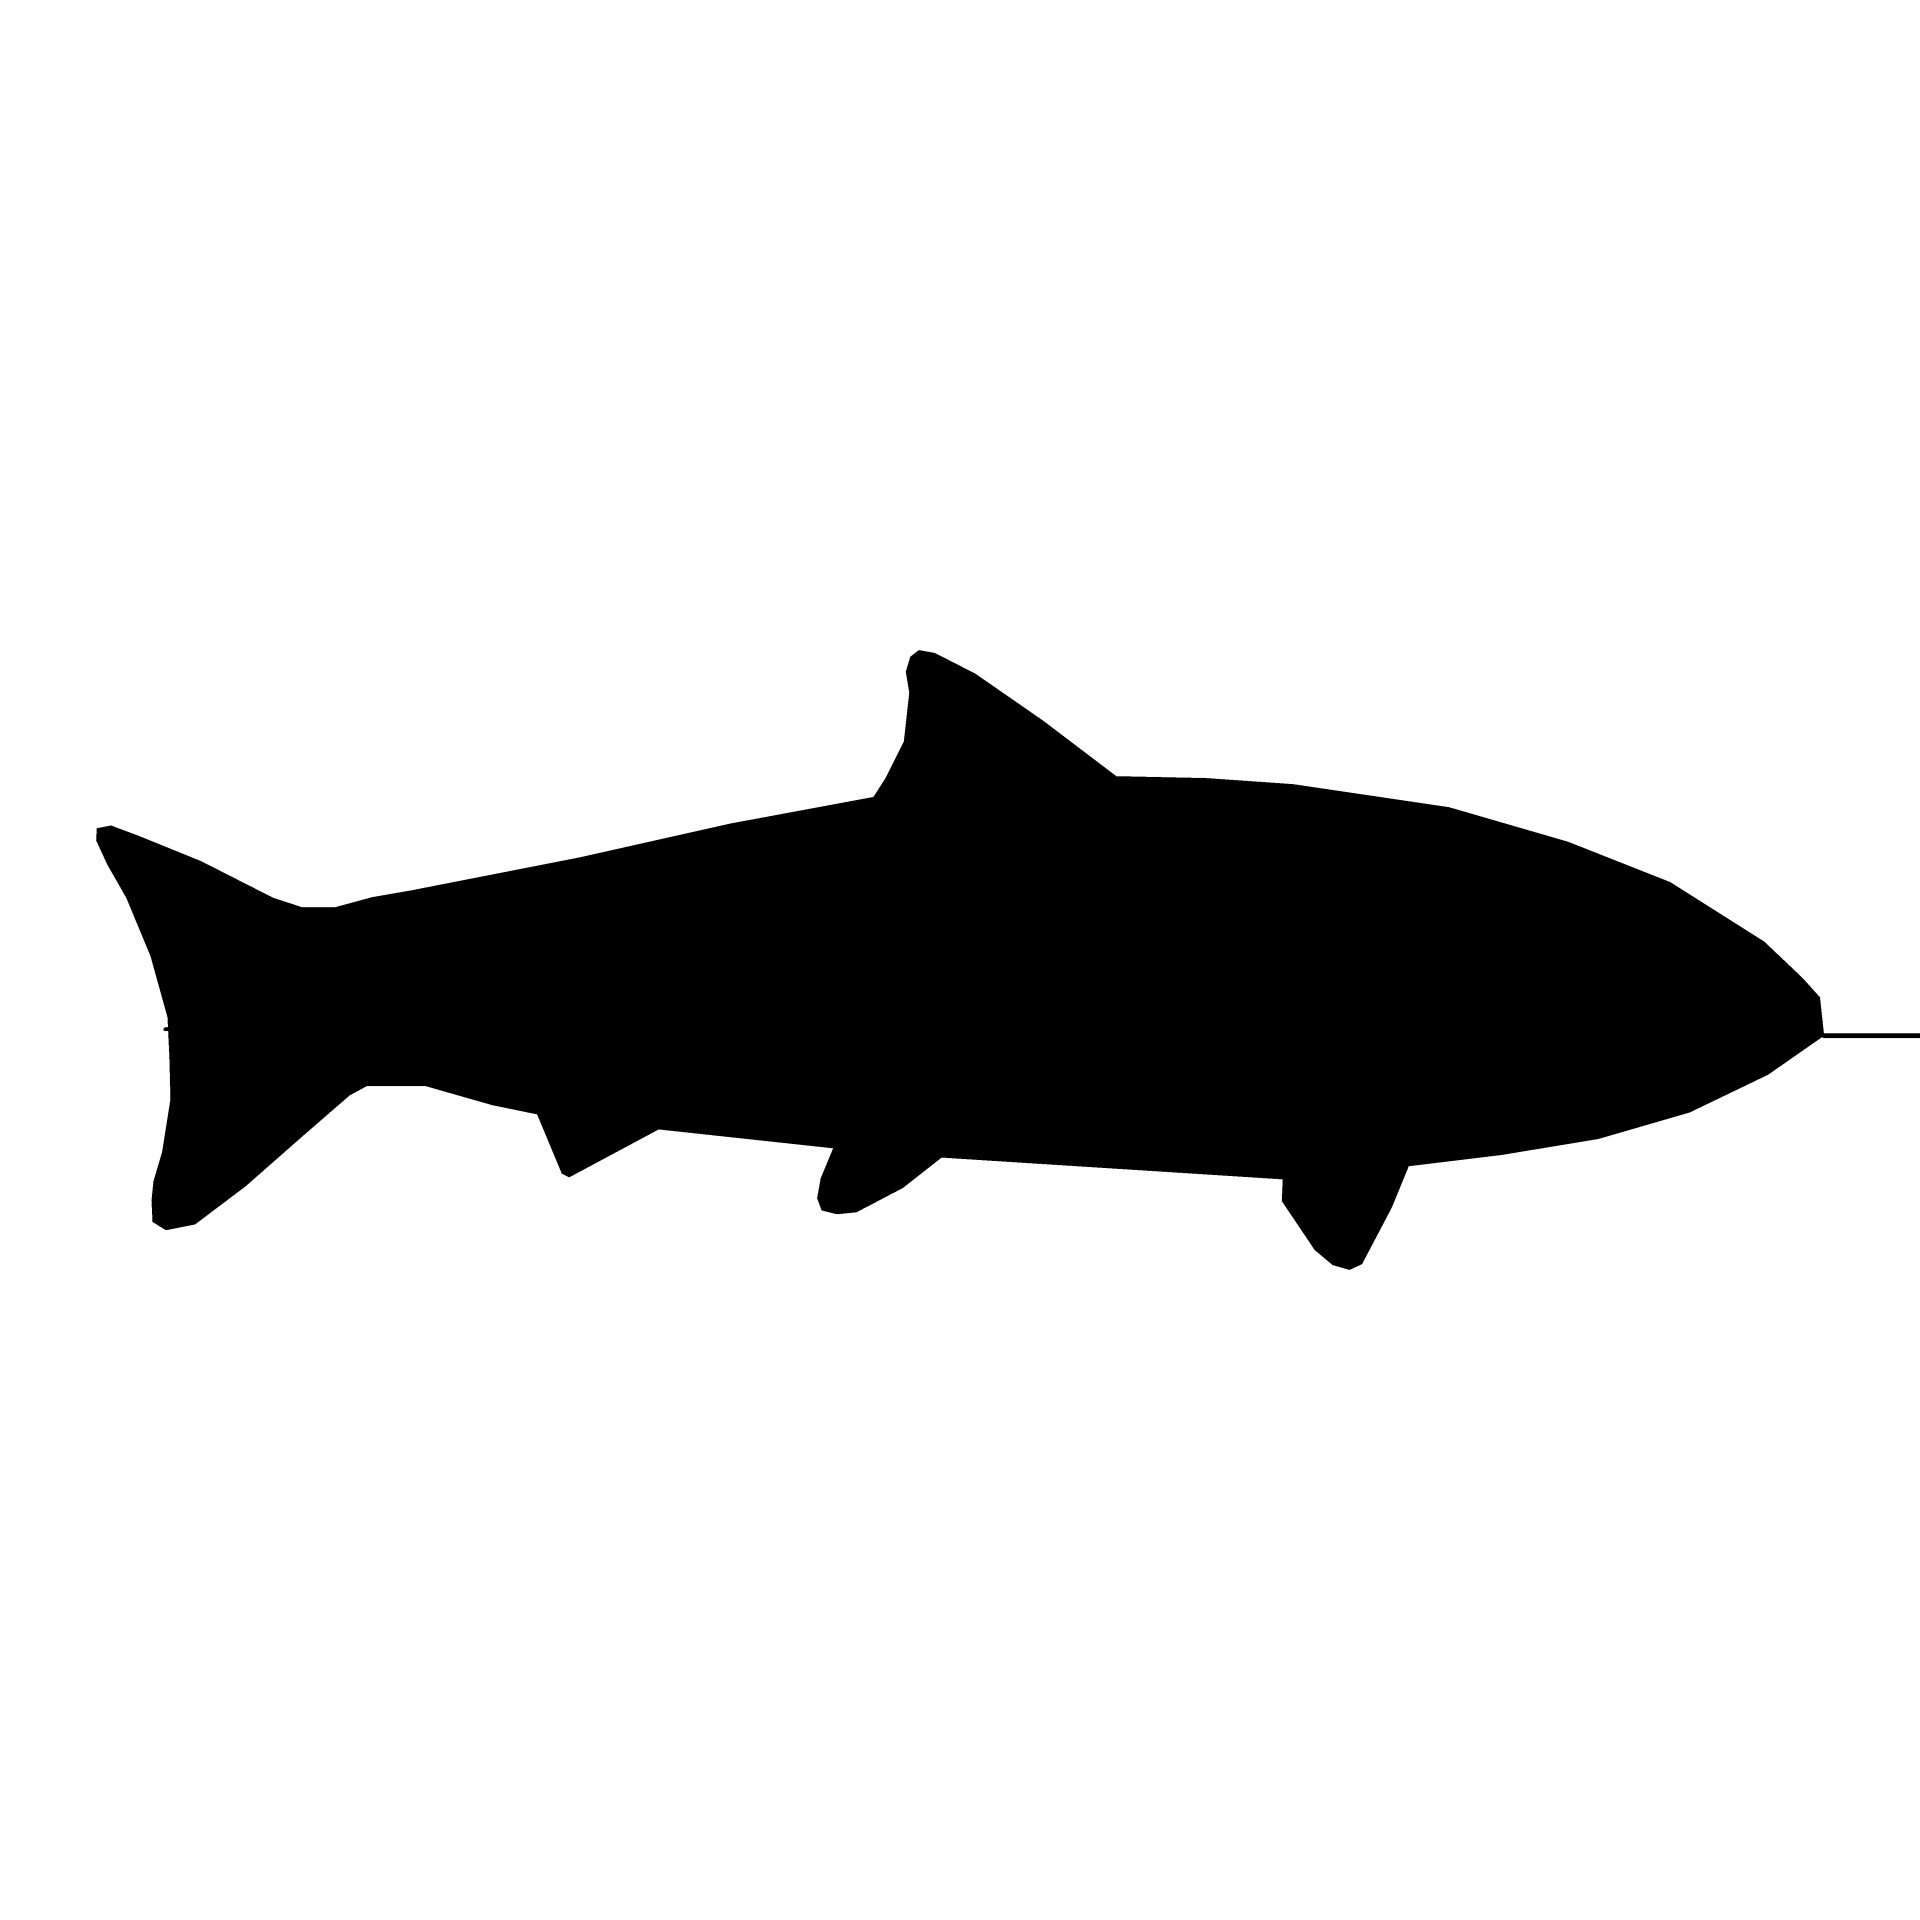 1920x1920 Fish Jumping Silhouette